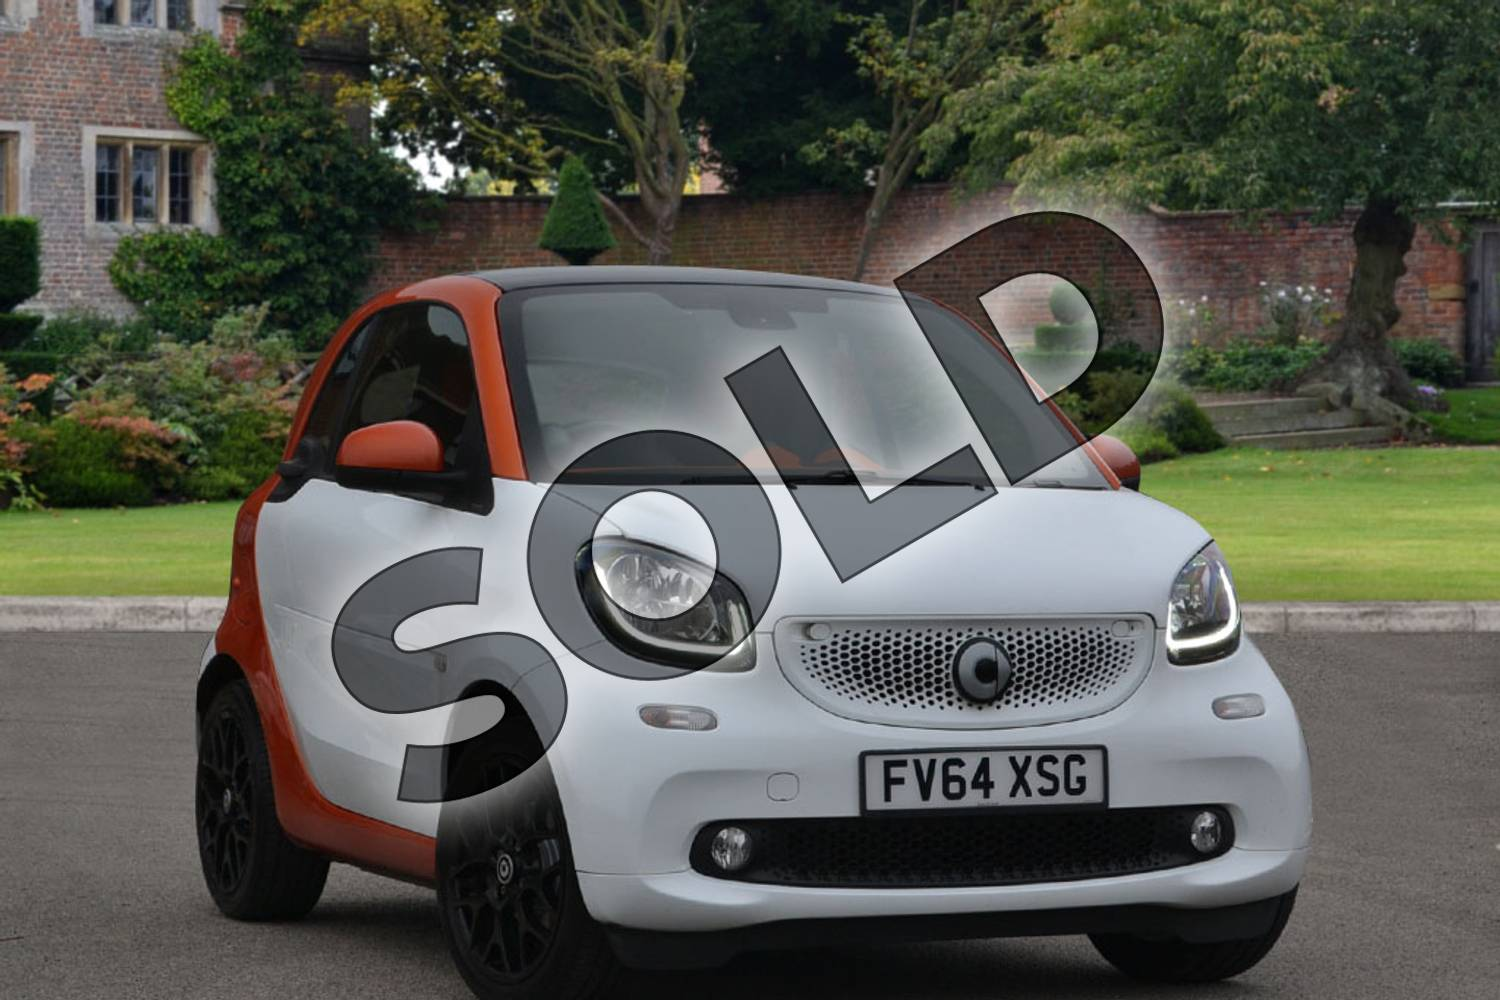 2015 Smart Fortwo Coupe Special Editions Special Editions 1.0 Edition 1 2dr in white at smart at Mercedes-Benz of Lincoln